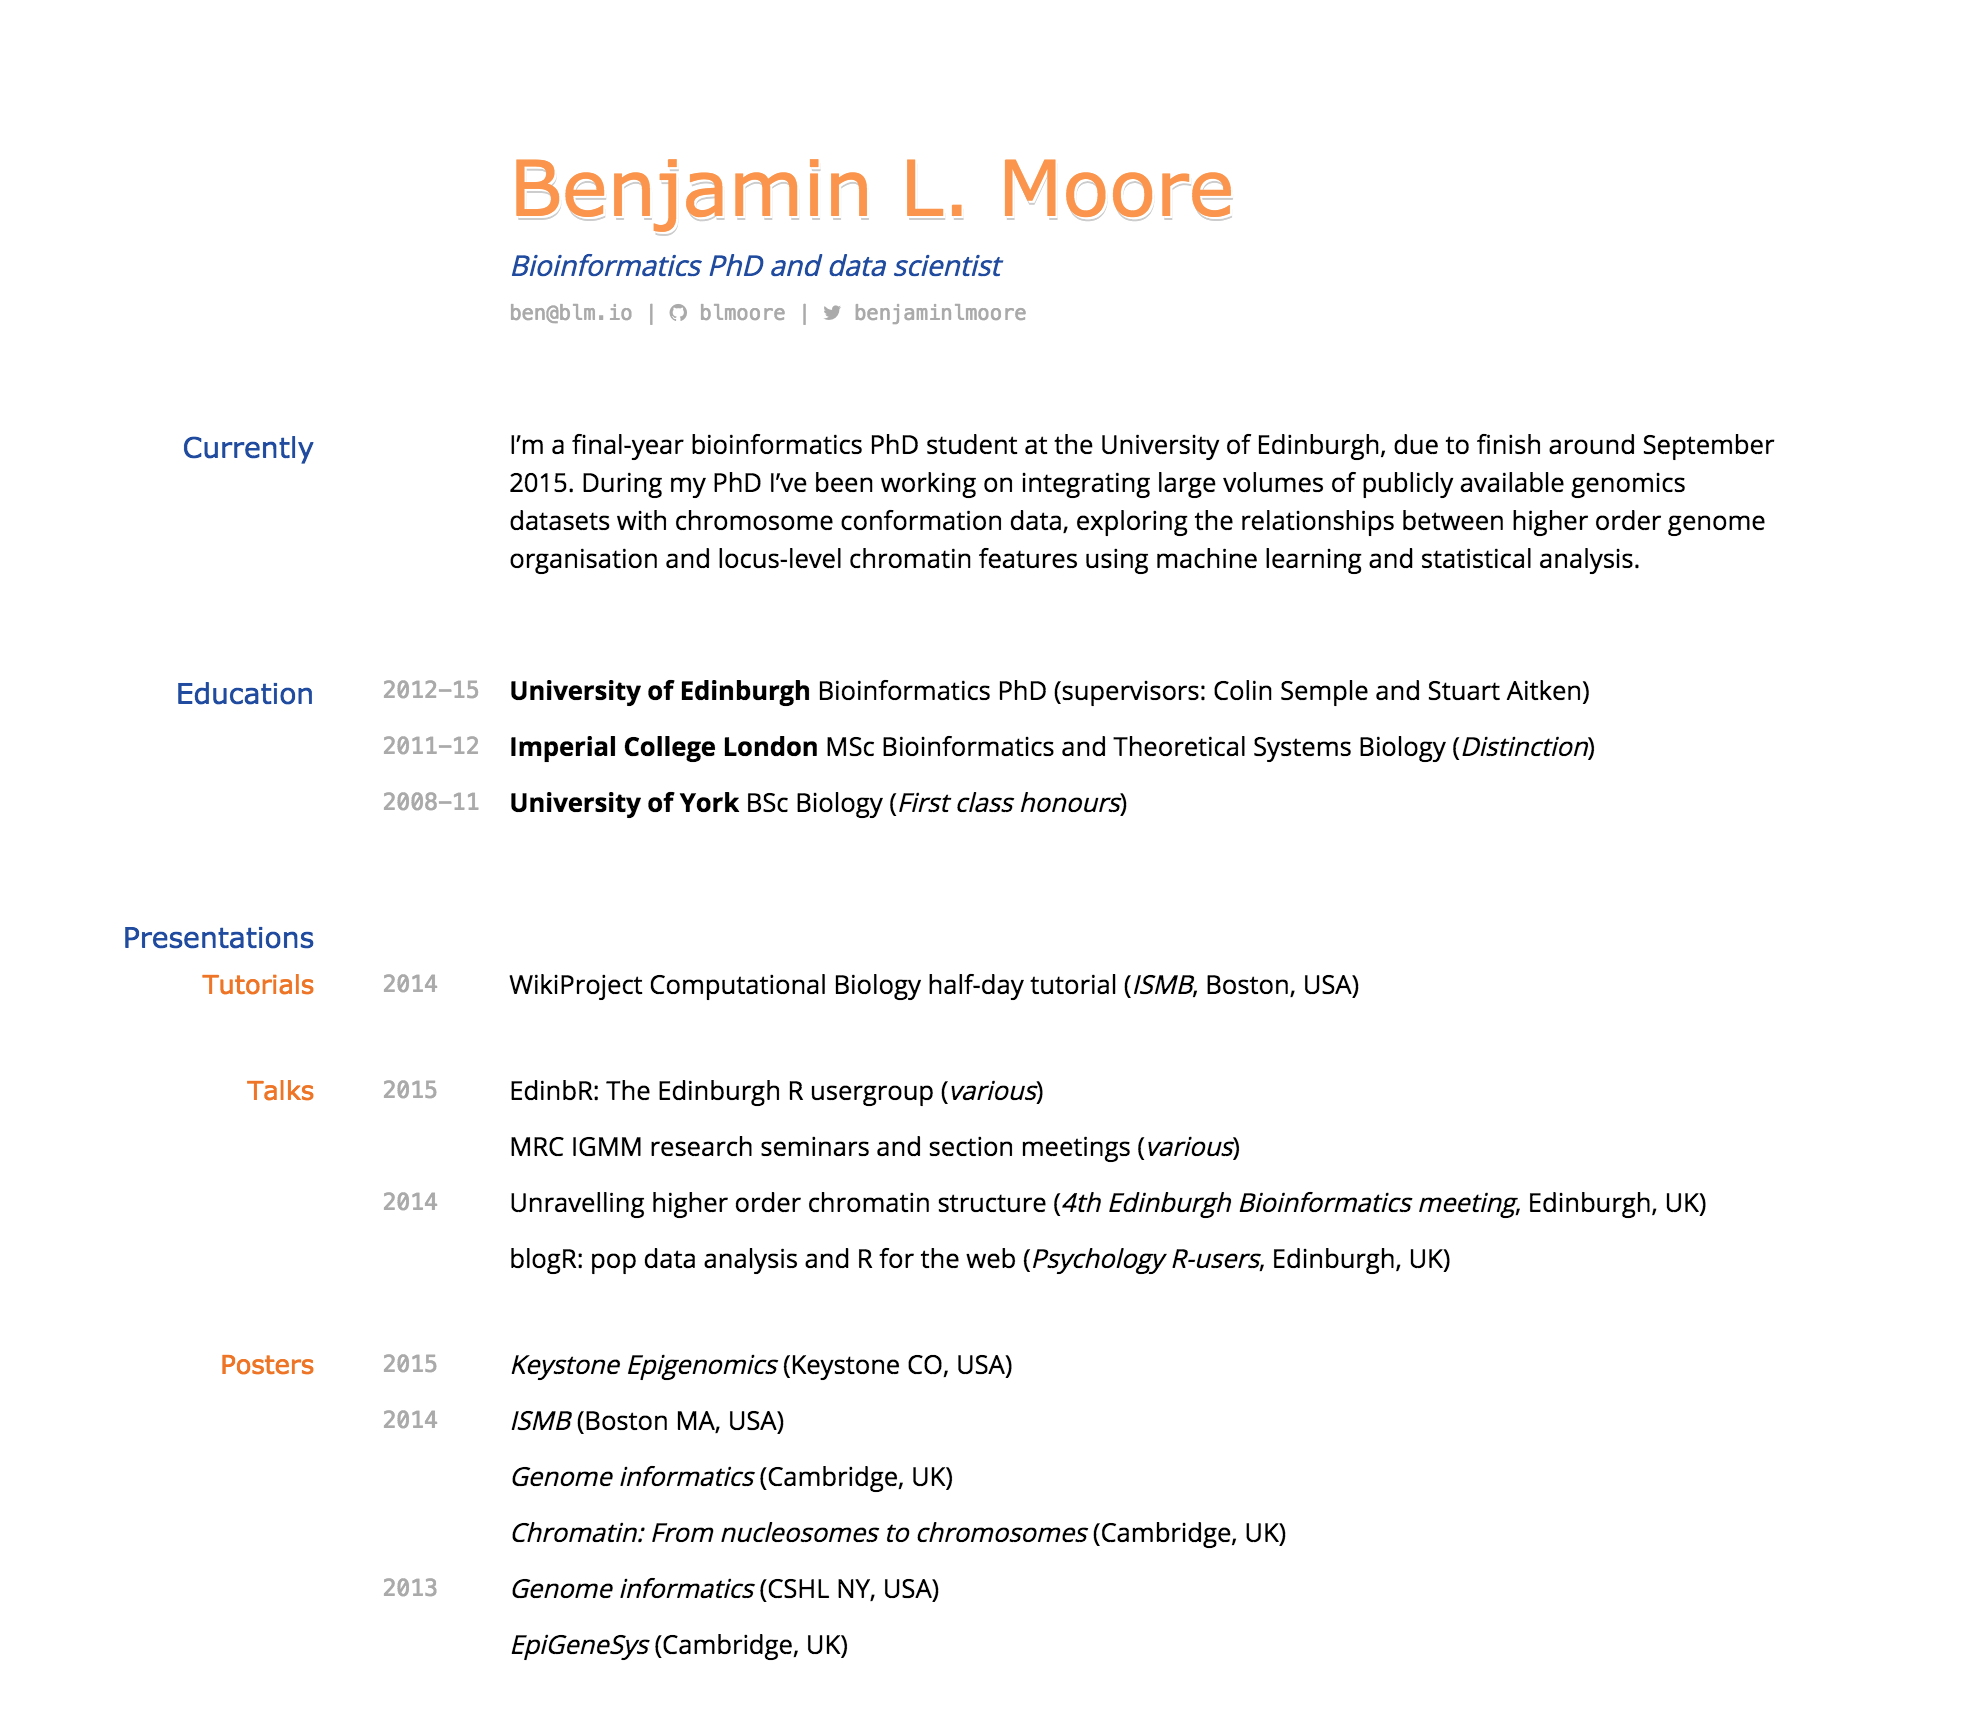 Building an academic CV in markdown · blm.io